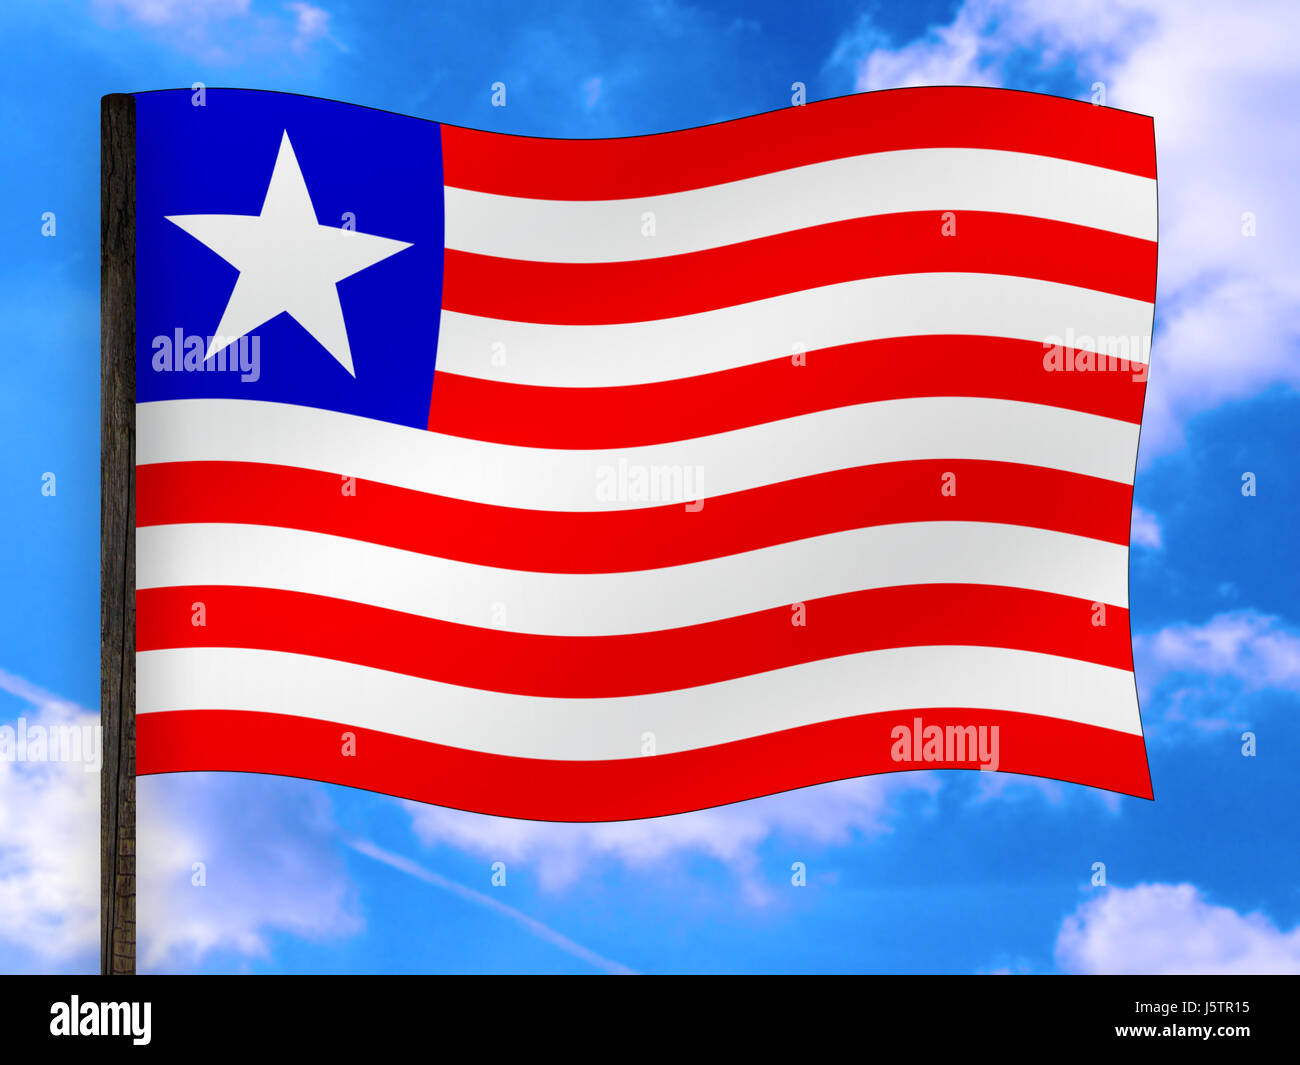 africa,flag,national colors,liberia,banners - Stock Image